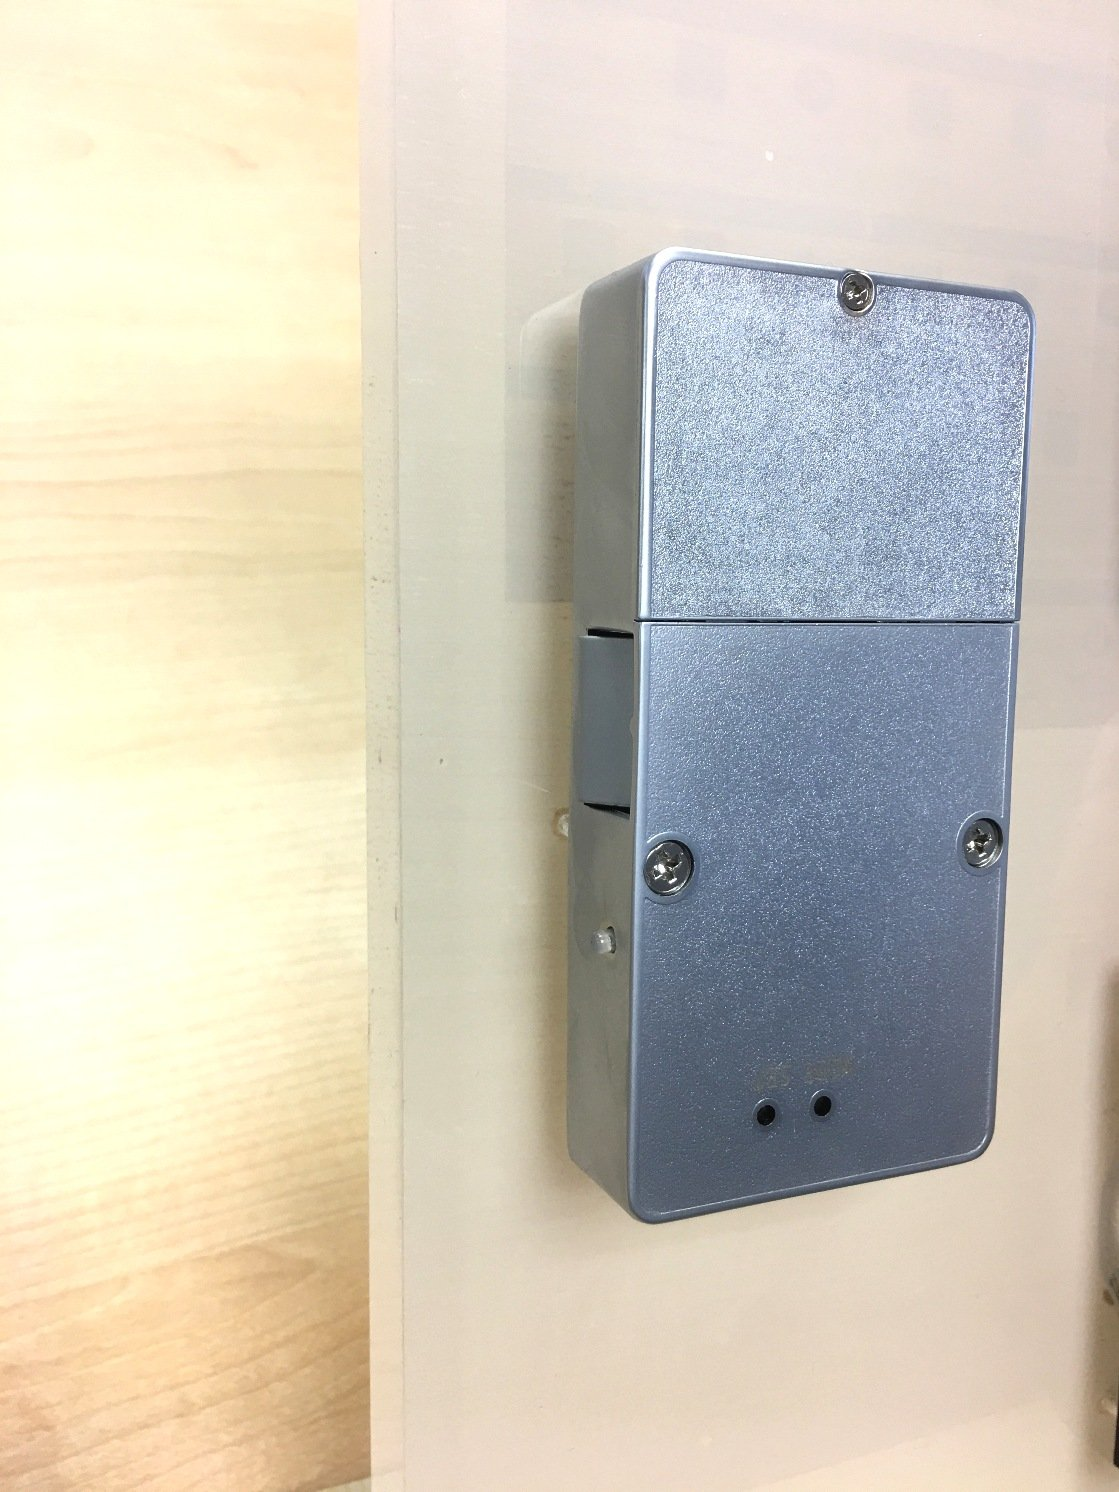 Reinforced RFID Hidden Cabinet Lock-Behind the Panel Concealed Lock with Aluminum Housing and Dead Battery Unlock Feature